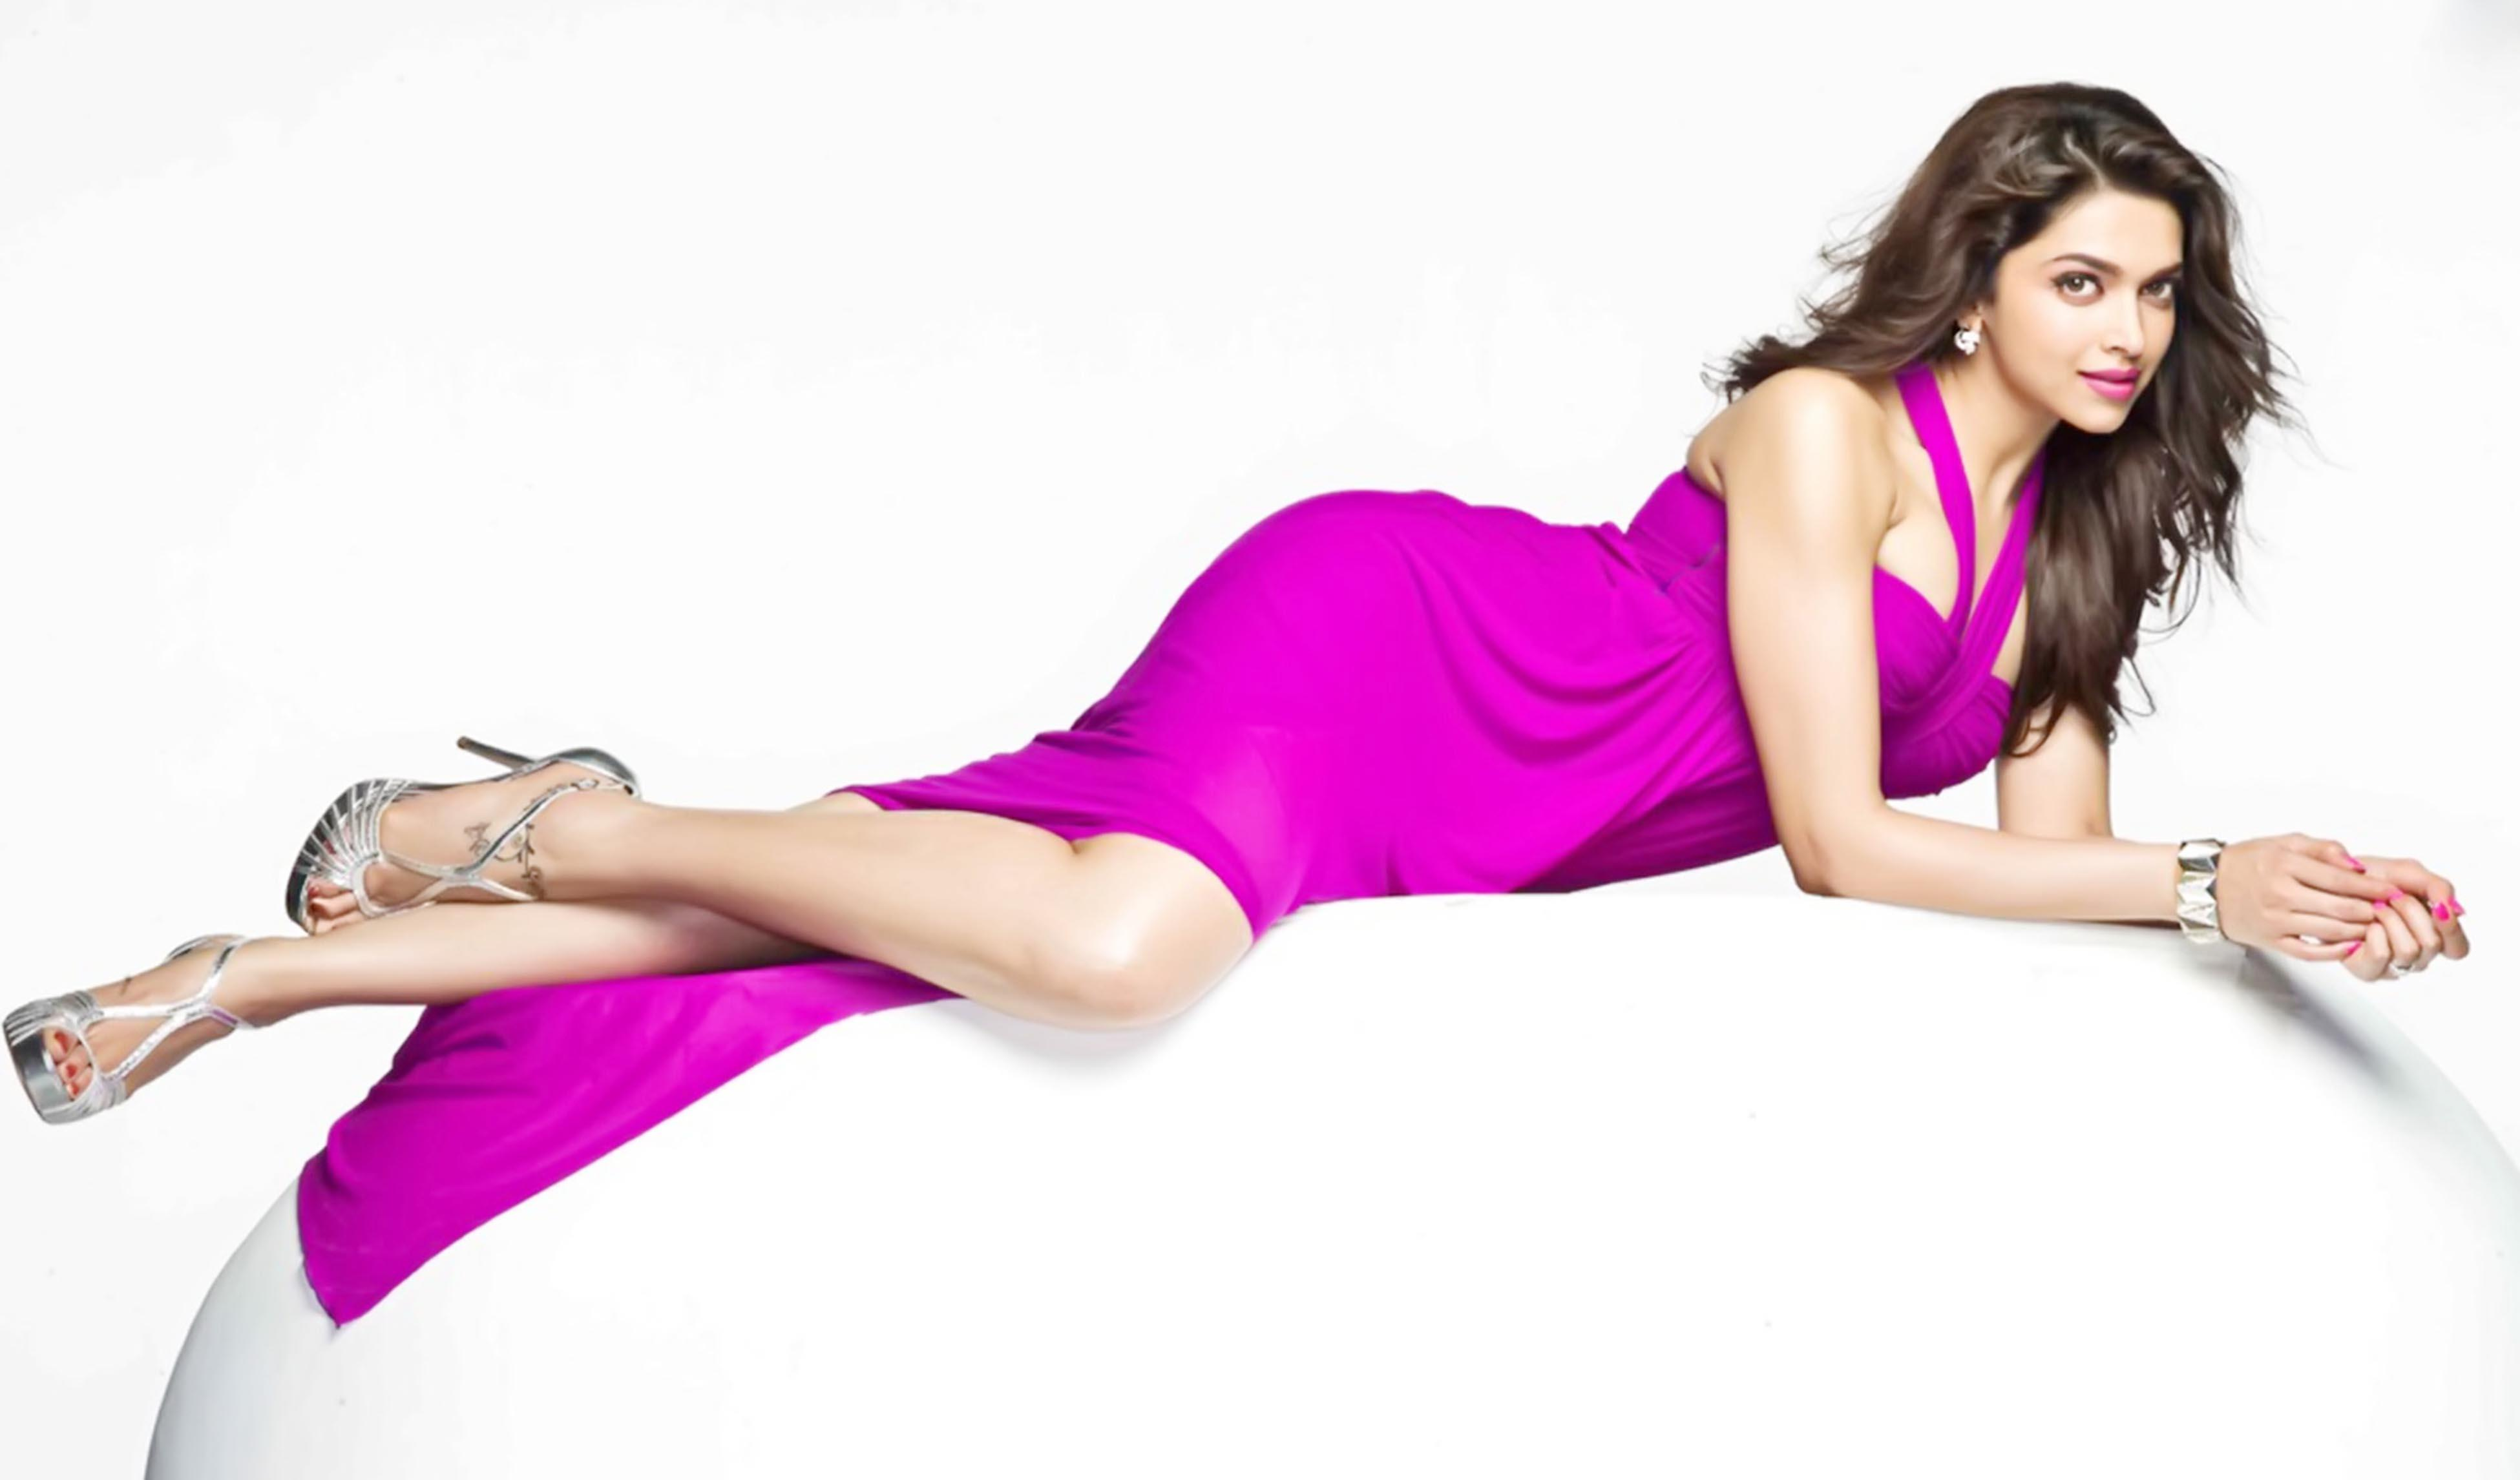 Deepika Padukone Hot  Sexy Images  Wallpapers  Movieraja Collection Of Movie -3888